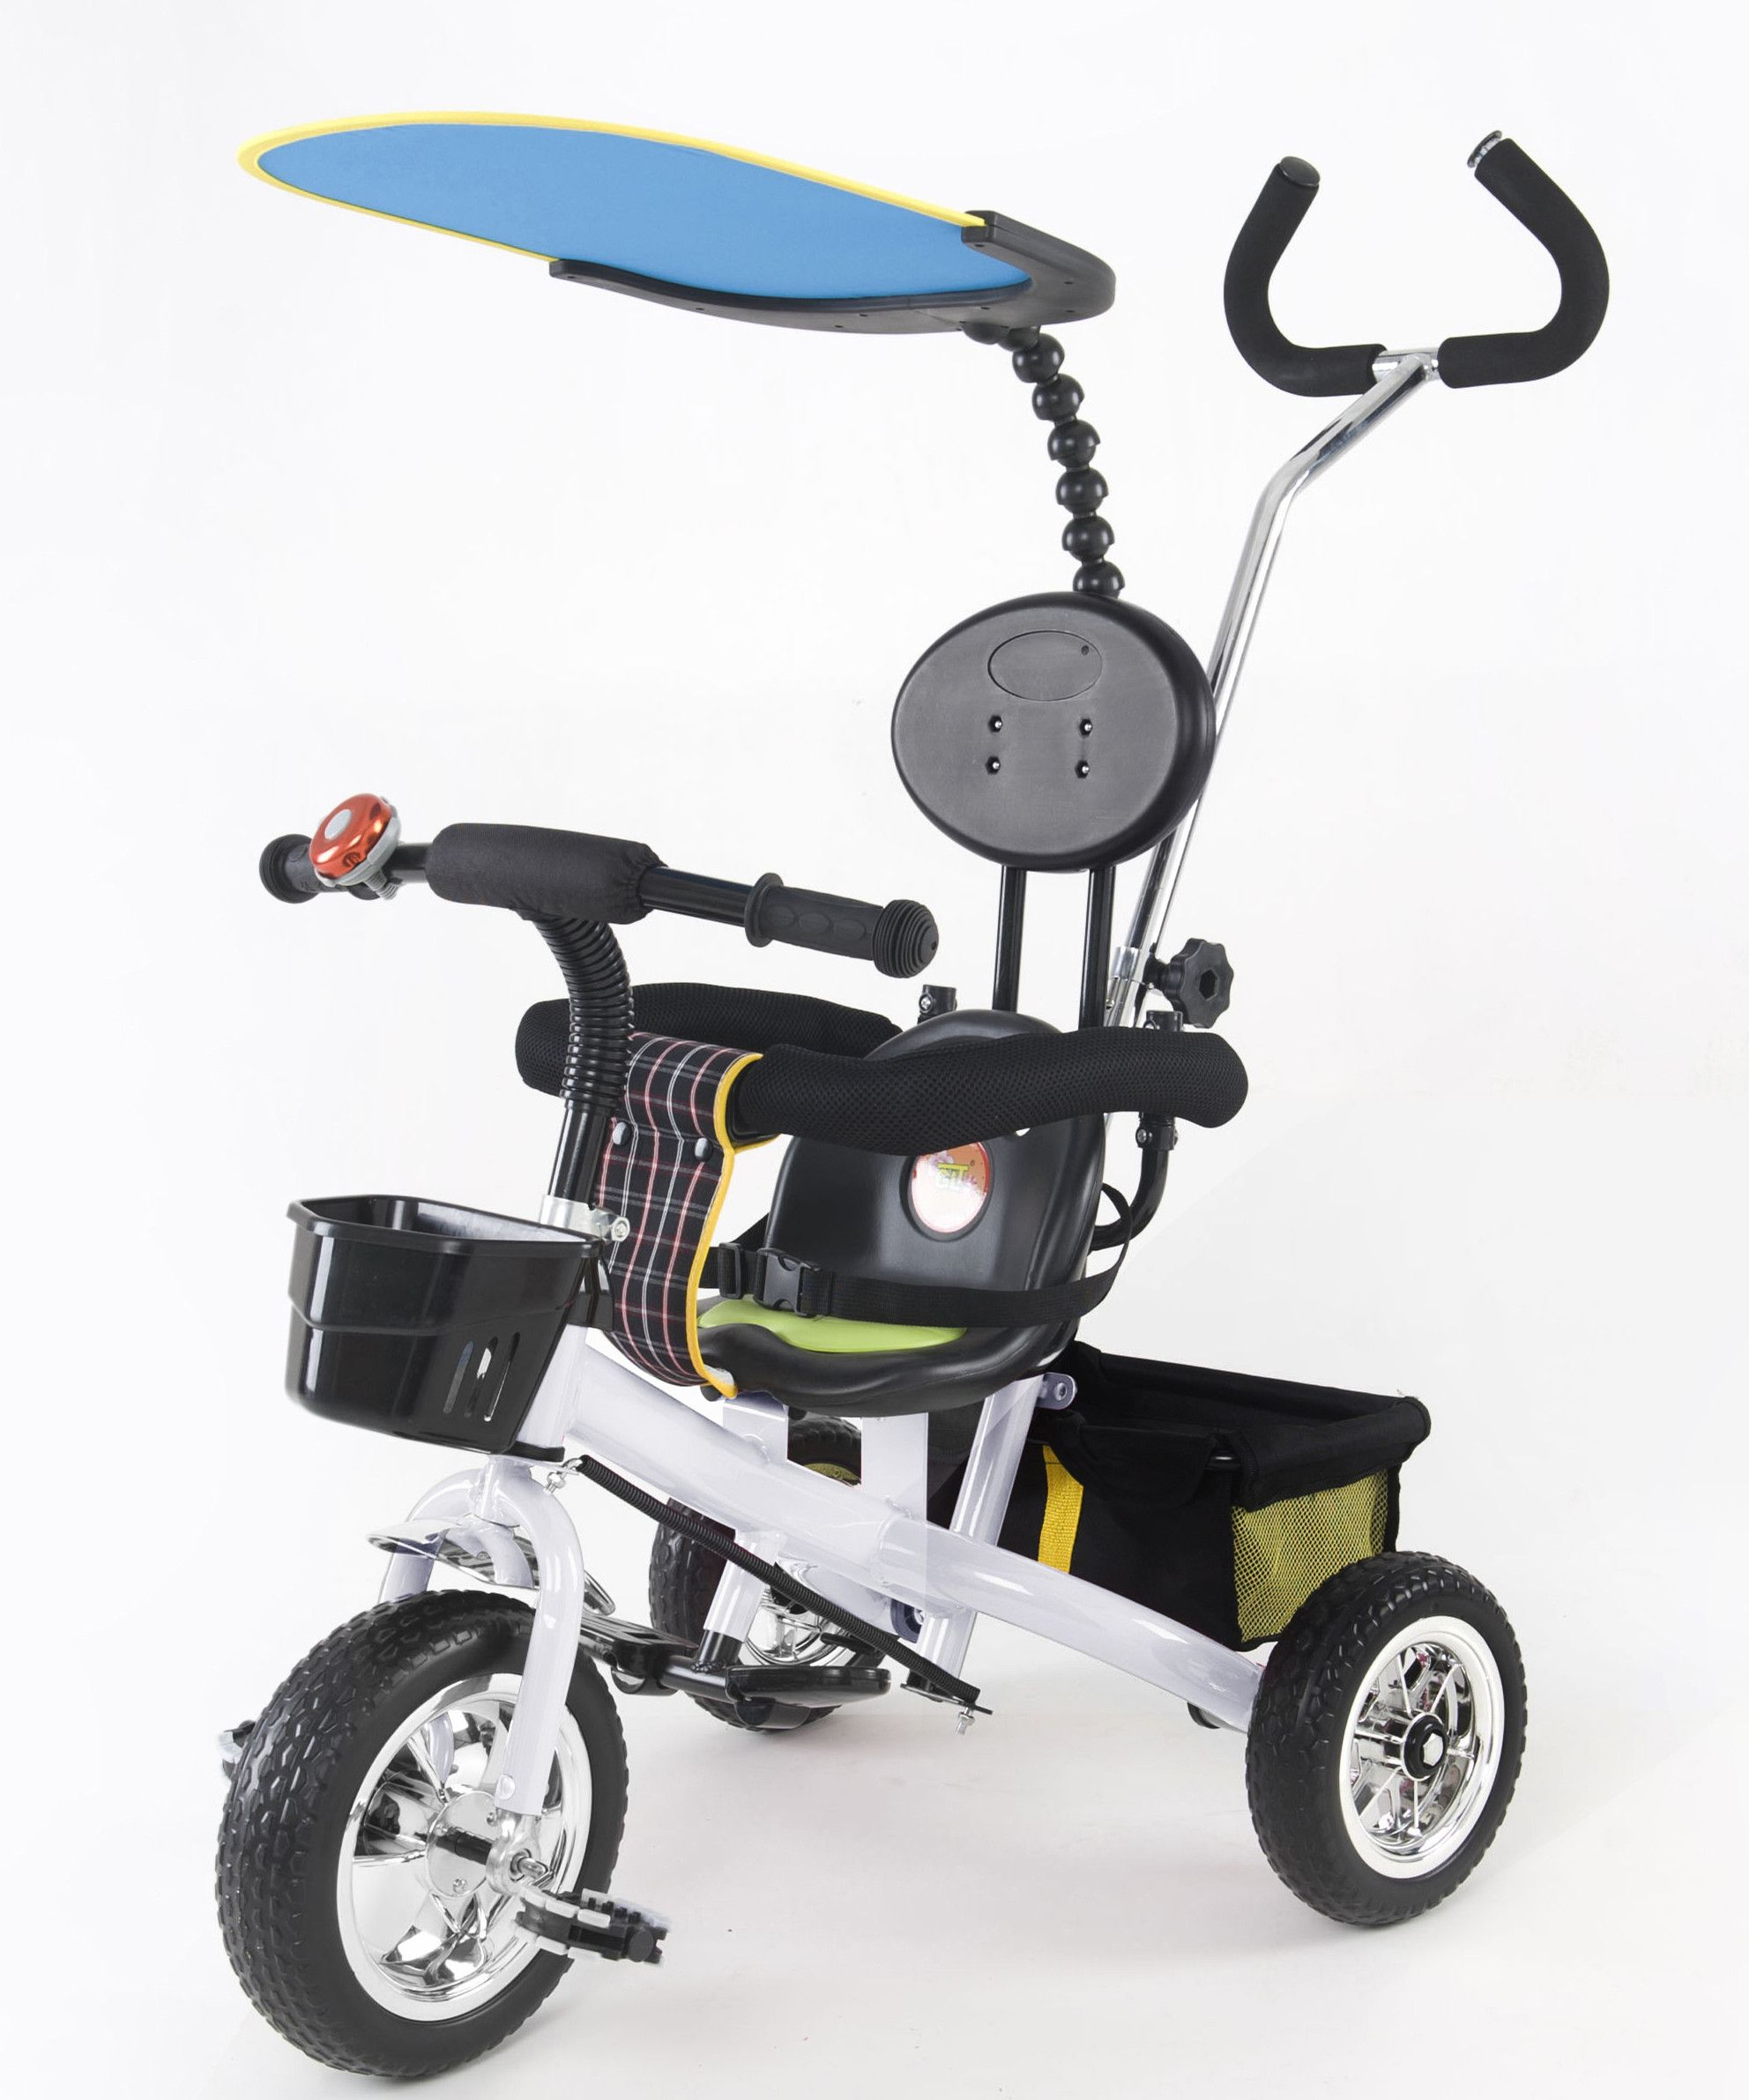 Pin by Hot One on Baby & Kids 4 in 1 Stroller Trike Kids